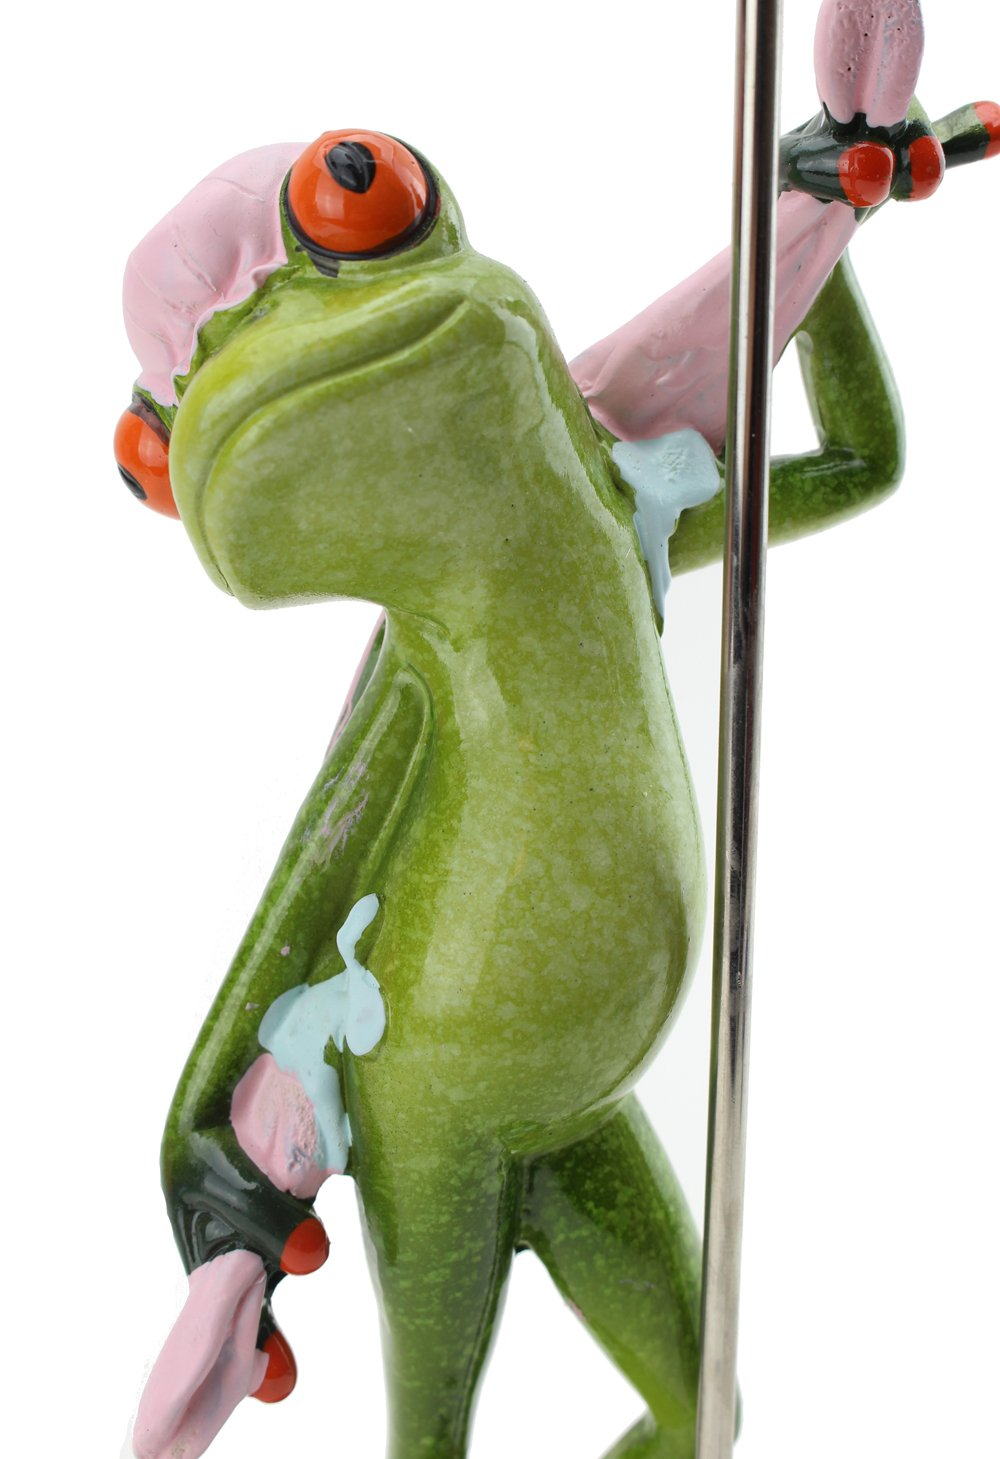 Novelty funny frog figurine taking a shower figurines home decor green orange ebay - Funny frog pictures ...